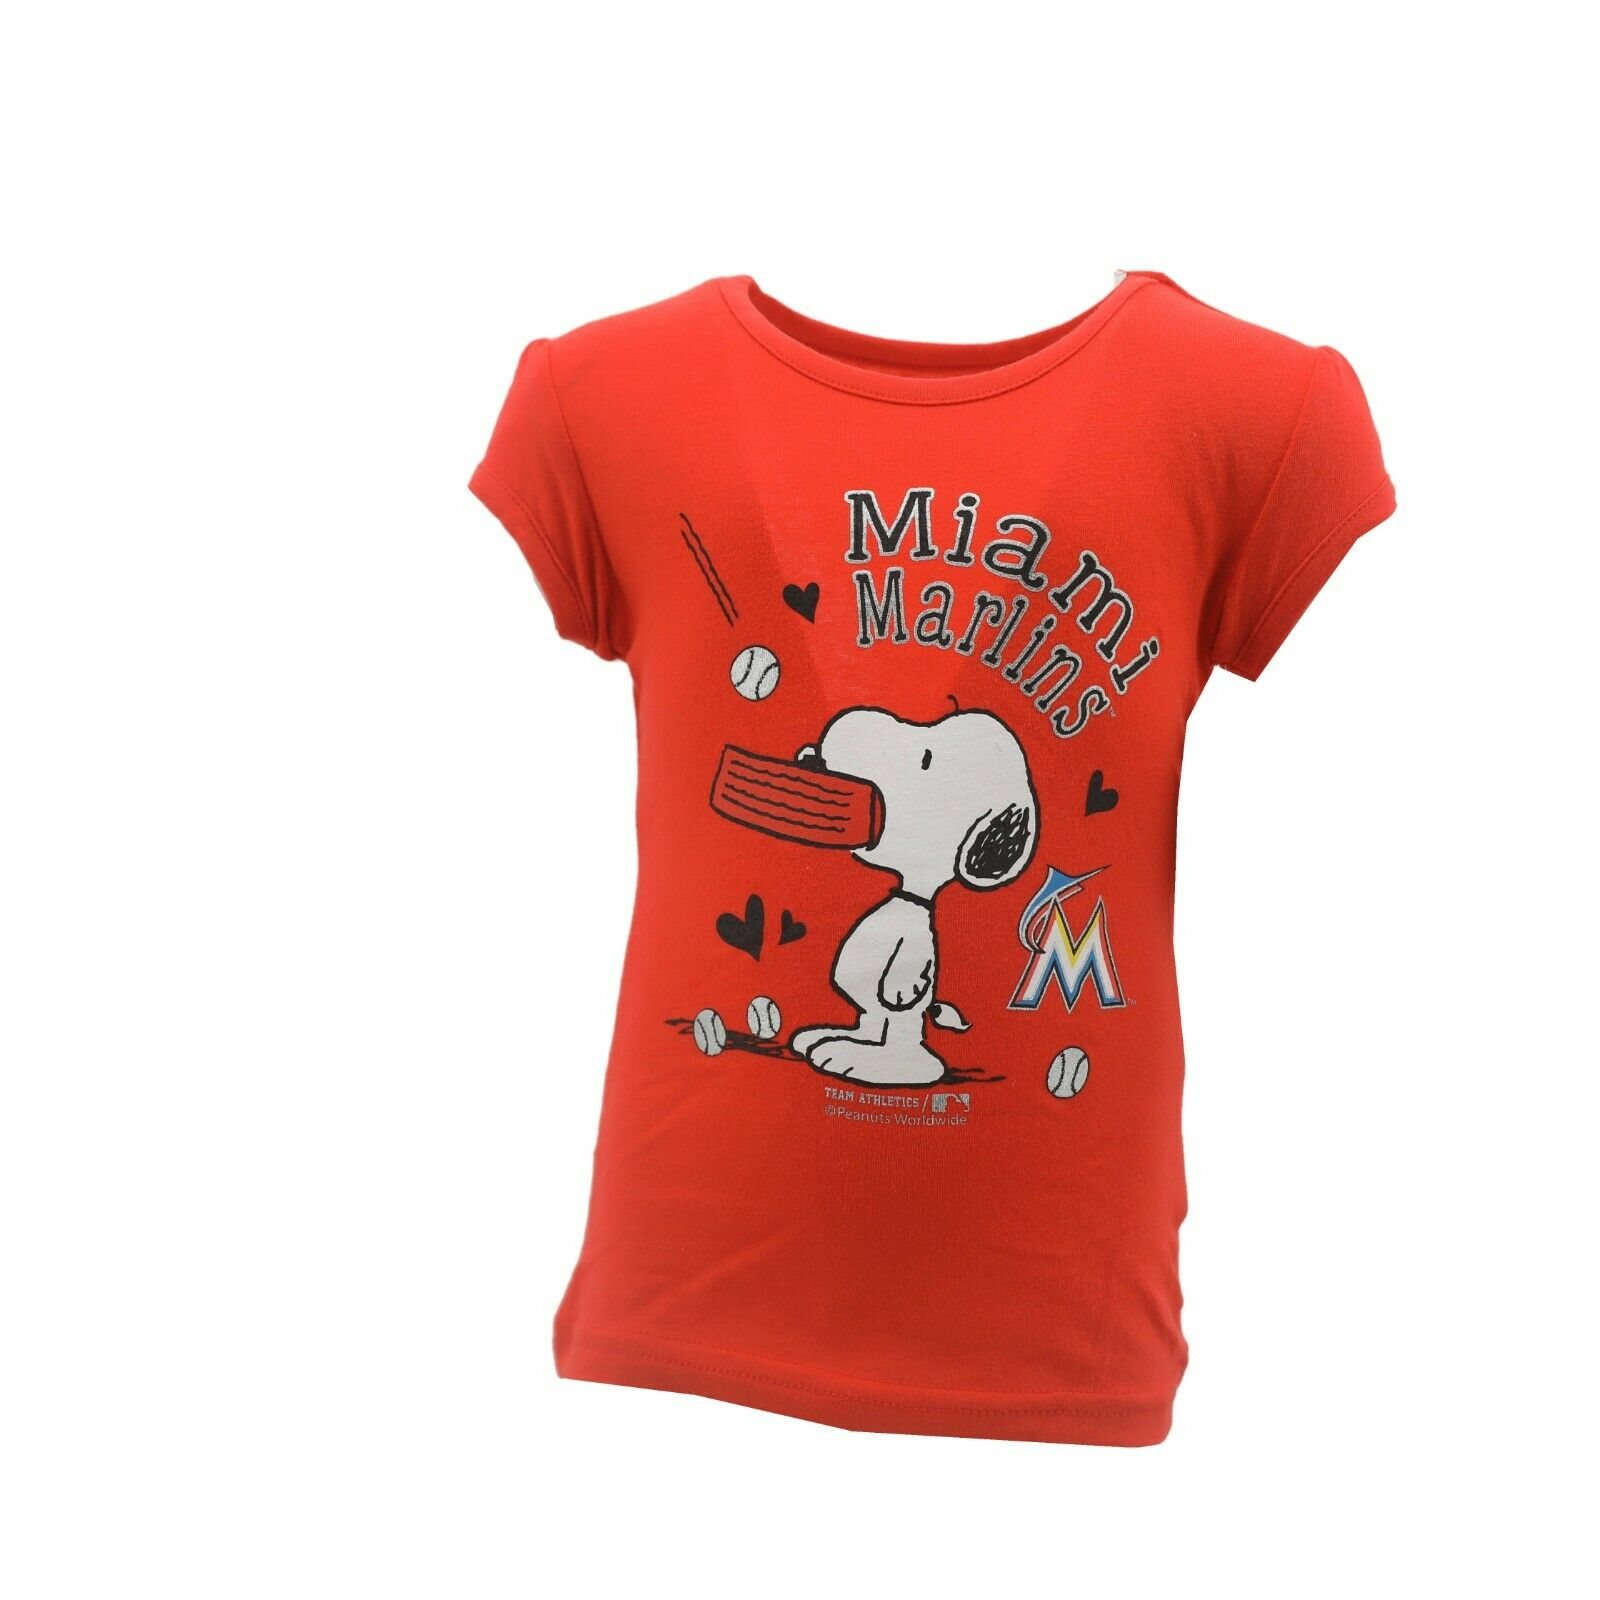 11485d68dbcad4 Miami Marlins Official MLB Genuine Infant Toddler Girls Size Snoopy T-Shirt  New